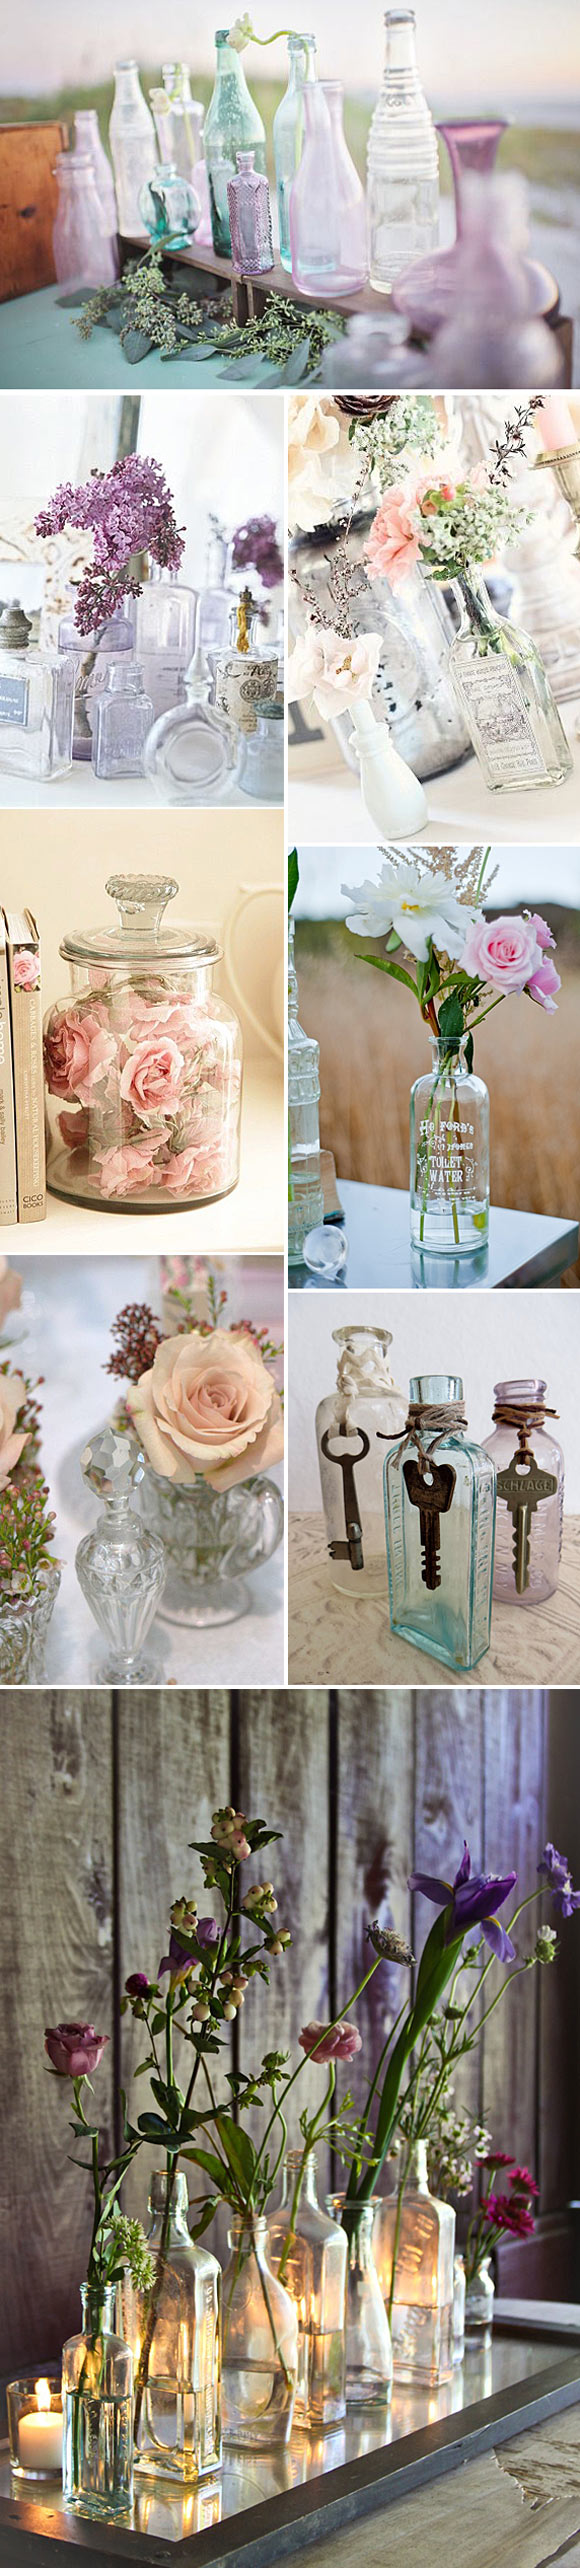 Decoracion con botellas de cristal vintage - Decoracion vintage ideas ...